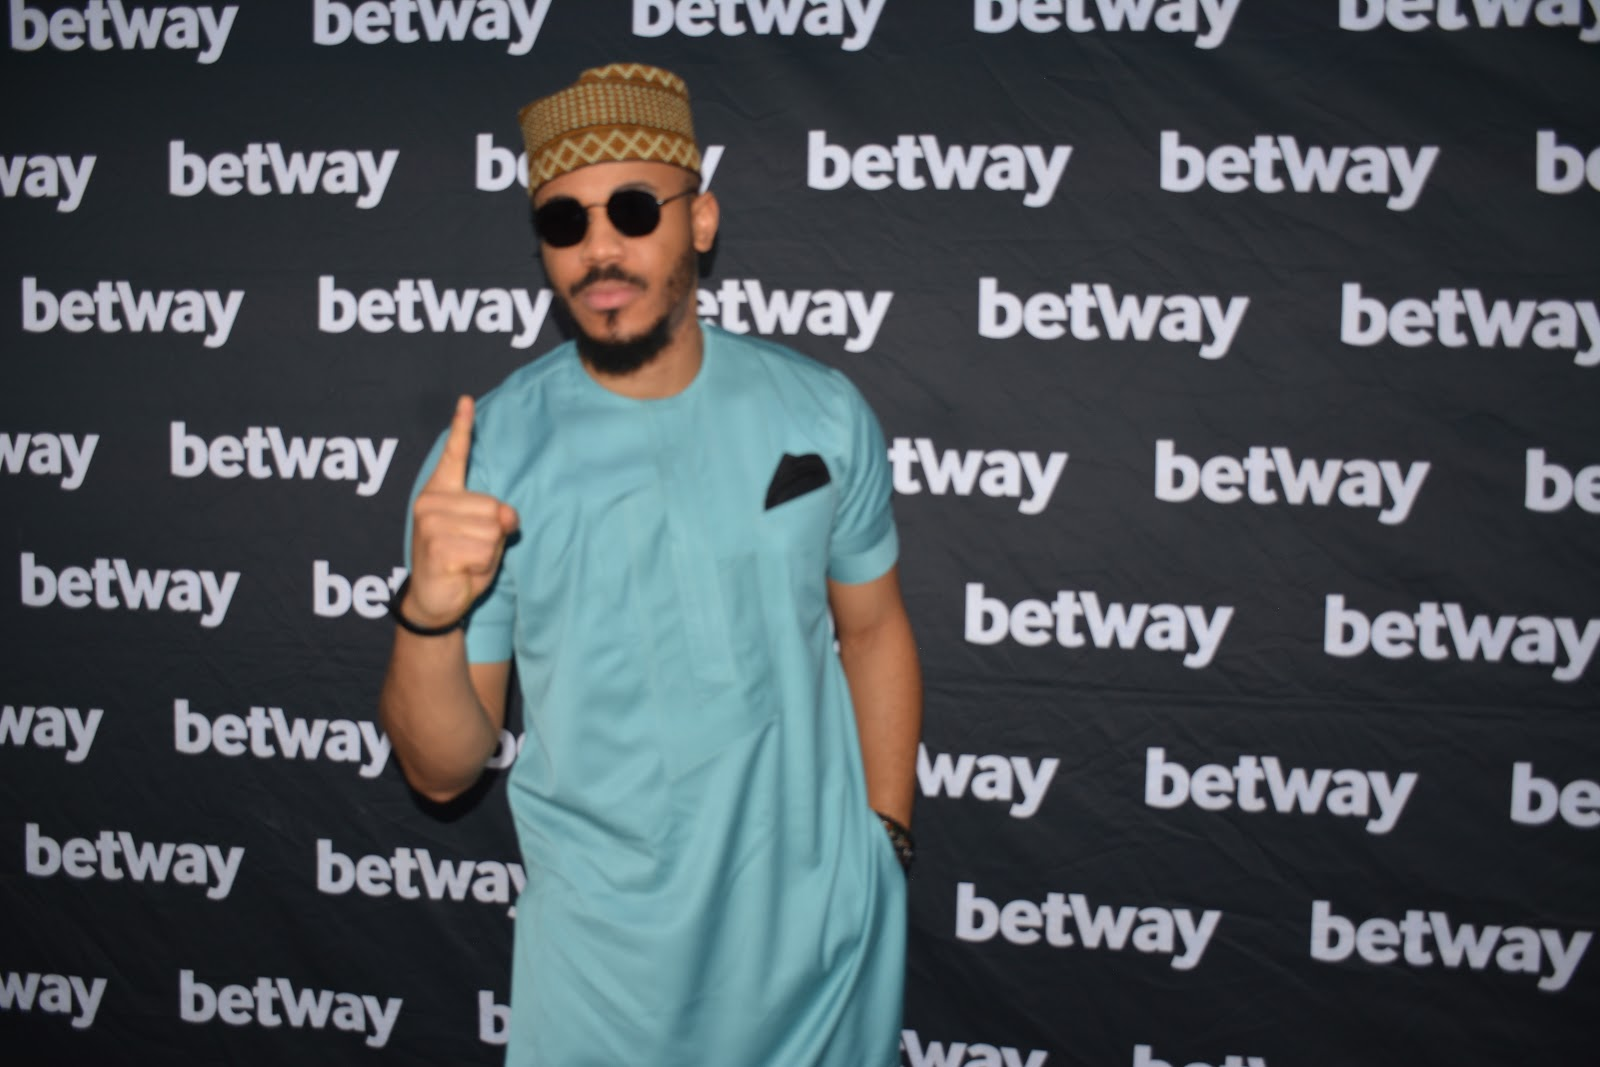 """""""I Have Been Single Since I Got Out Of Secondary School"""" – BBNaija's Ozo Says On Betway Media Tour"""